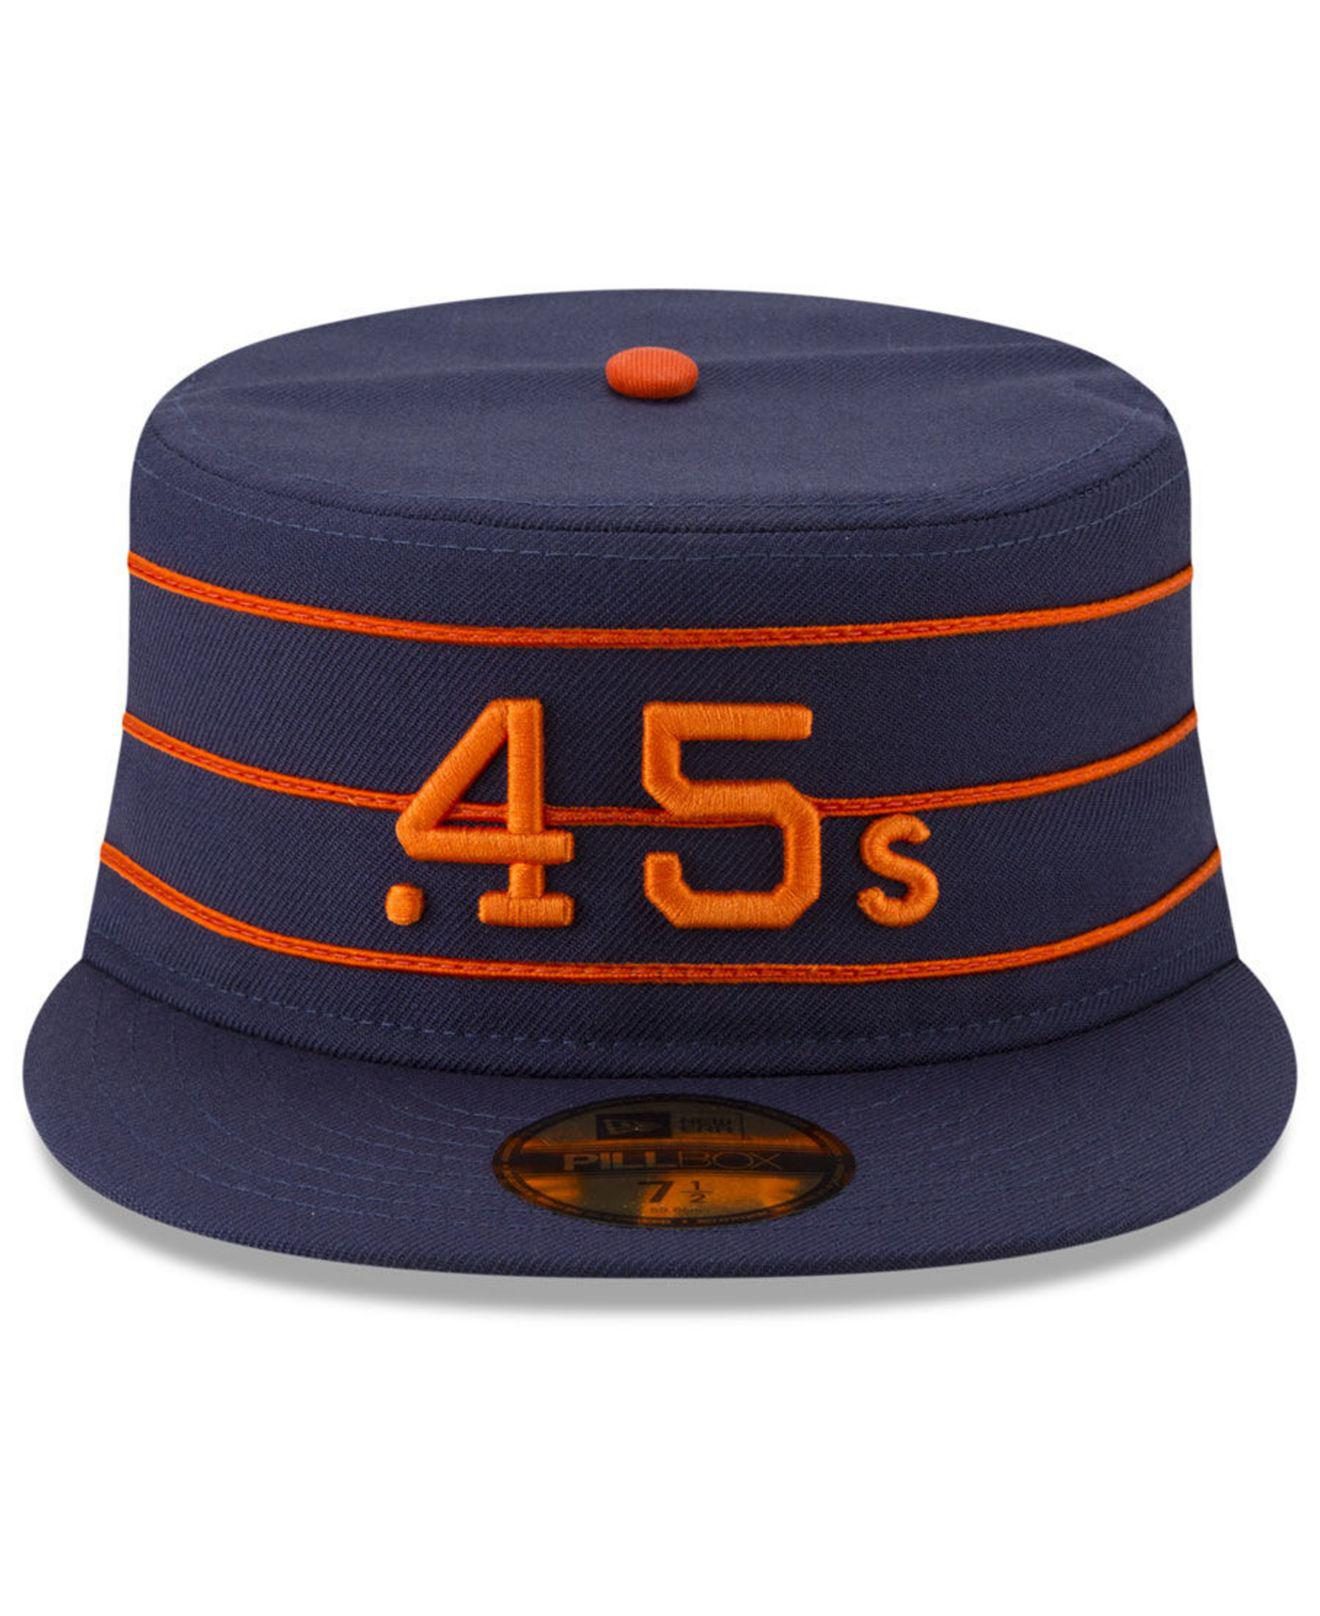 26cc8a6367c ... Houston Colt 45s Pillbox 59fifty-fitted Cap for Men - Lyst. View  fullscreen